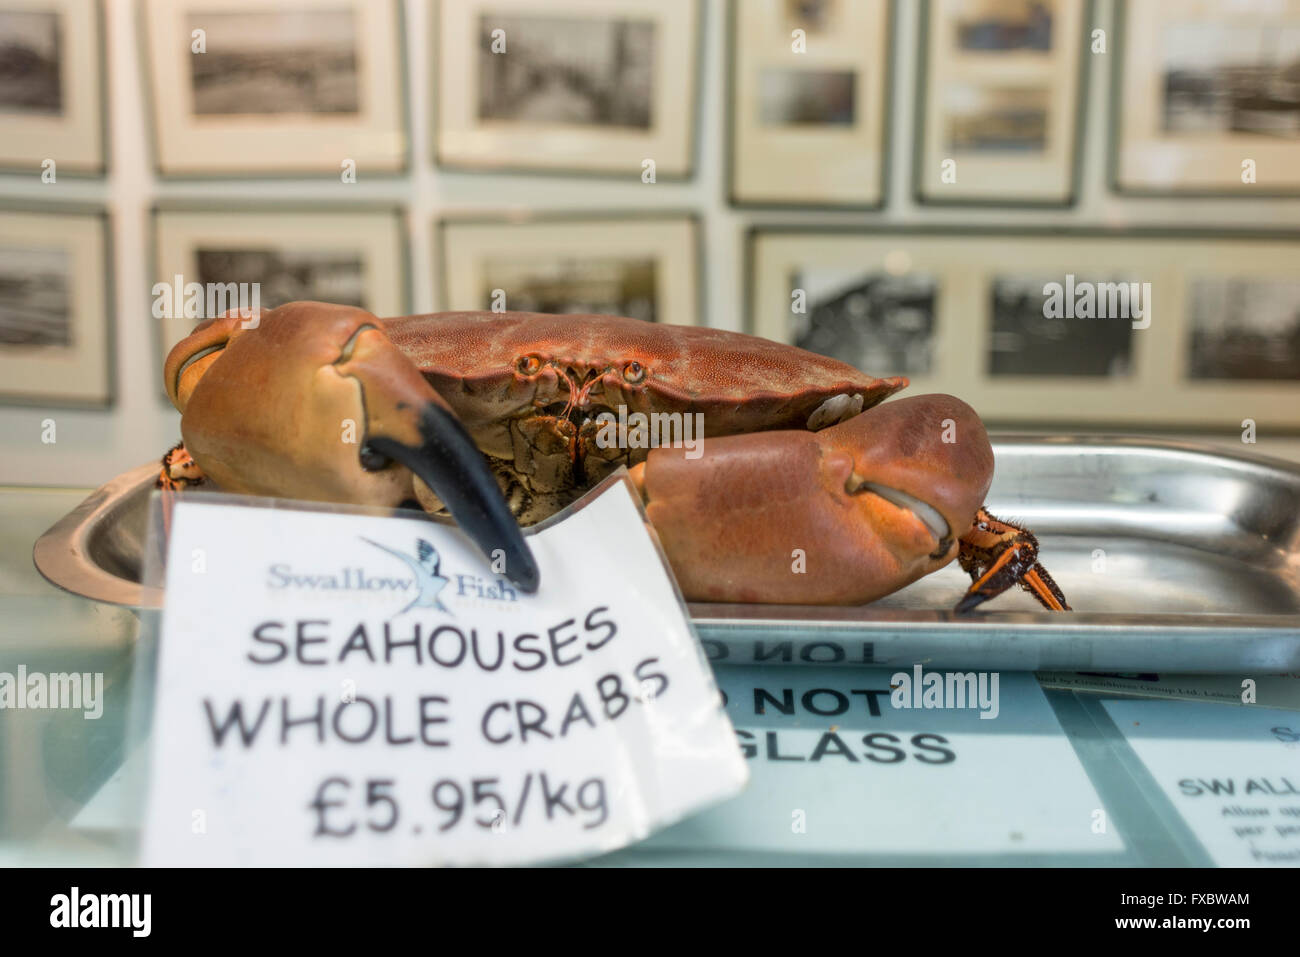 Swallow Fish, Seahouses, Northumberland - Stock Image